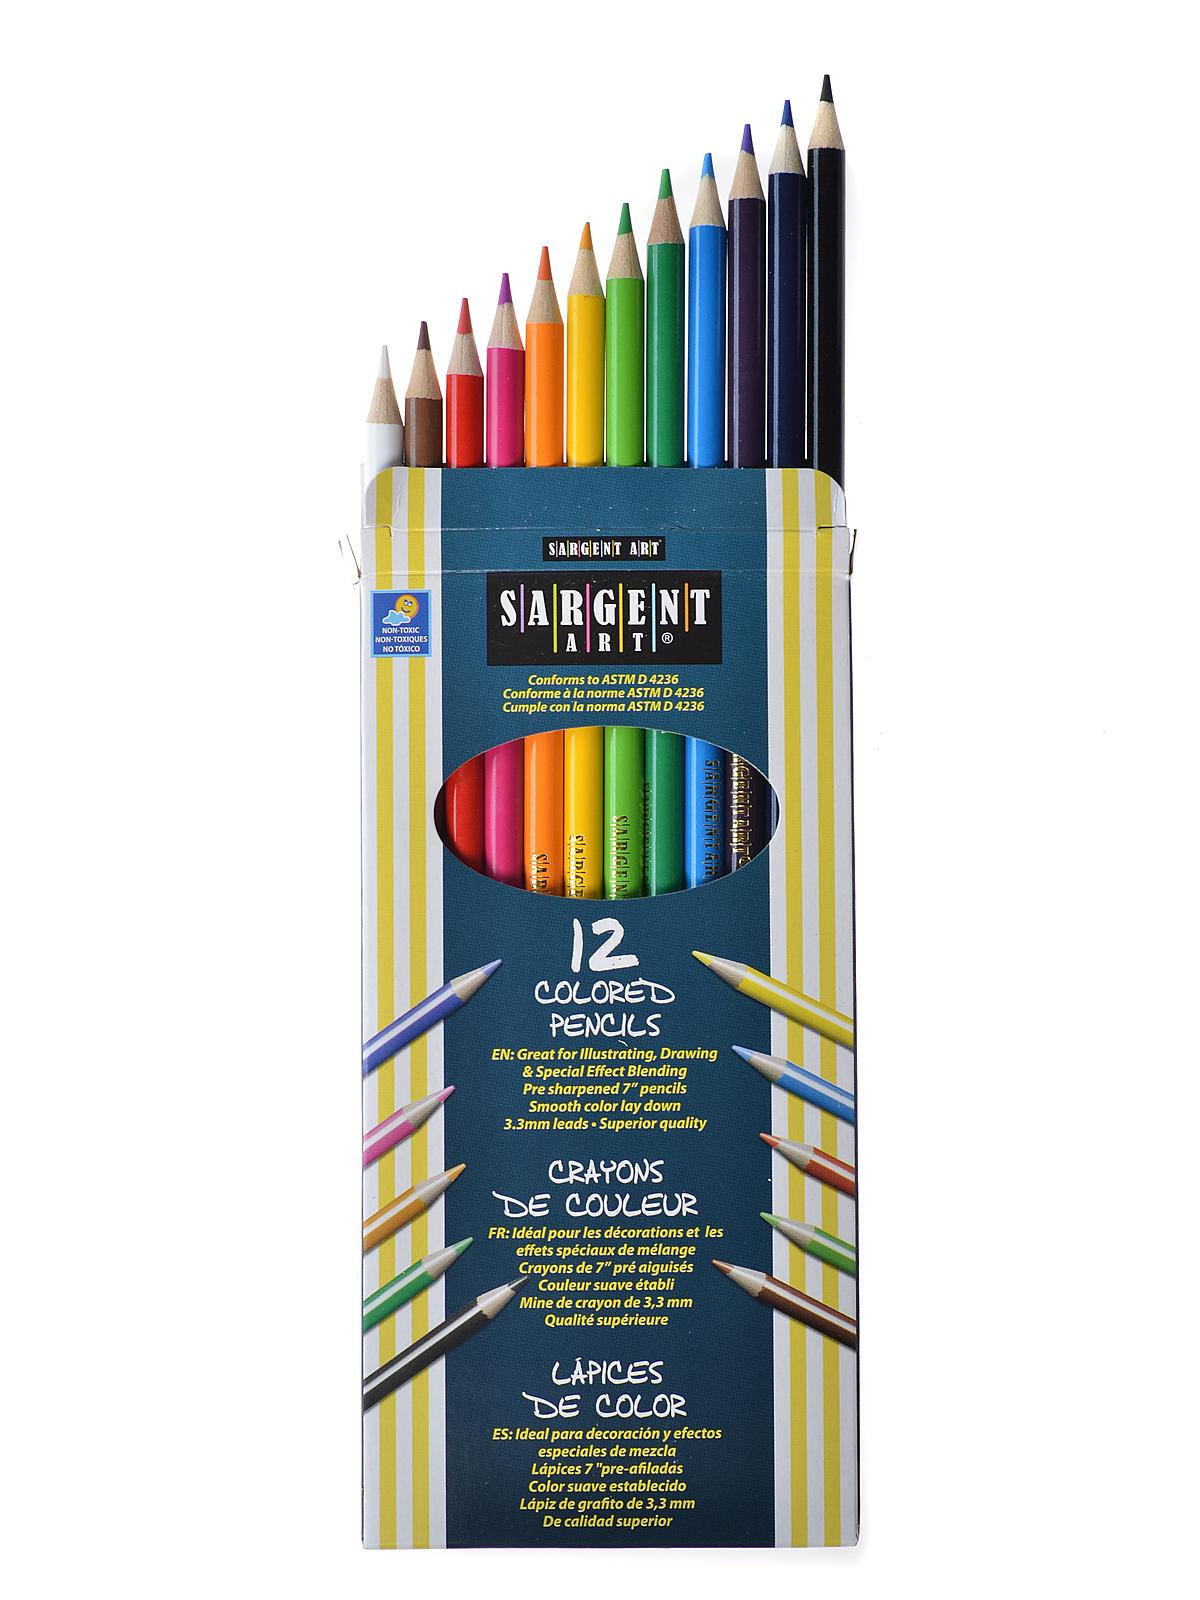 Sargent Colored Pencils Review 28 Images Sargent 174 3